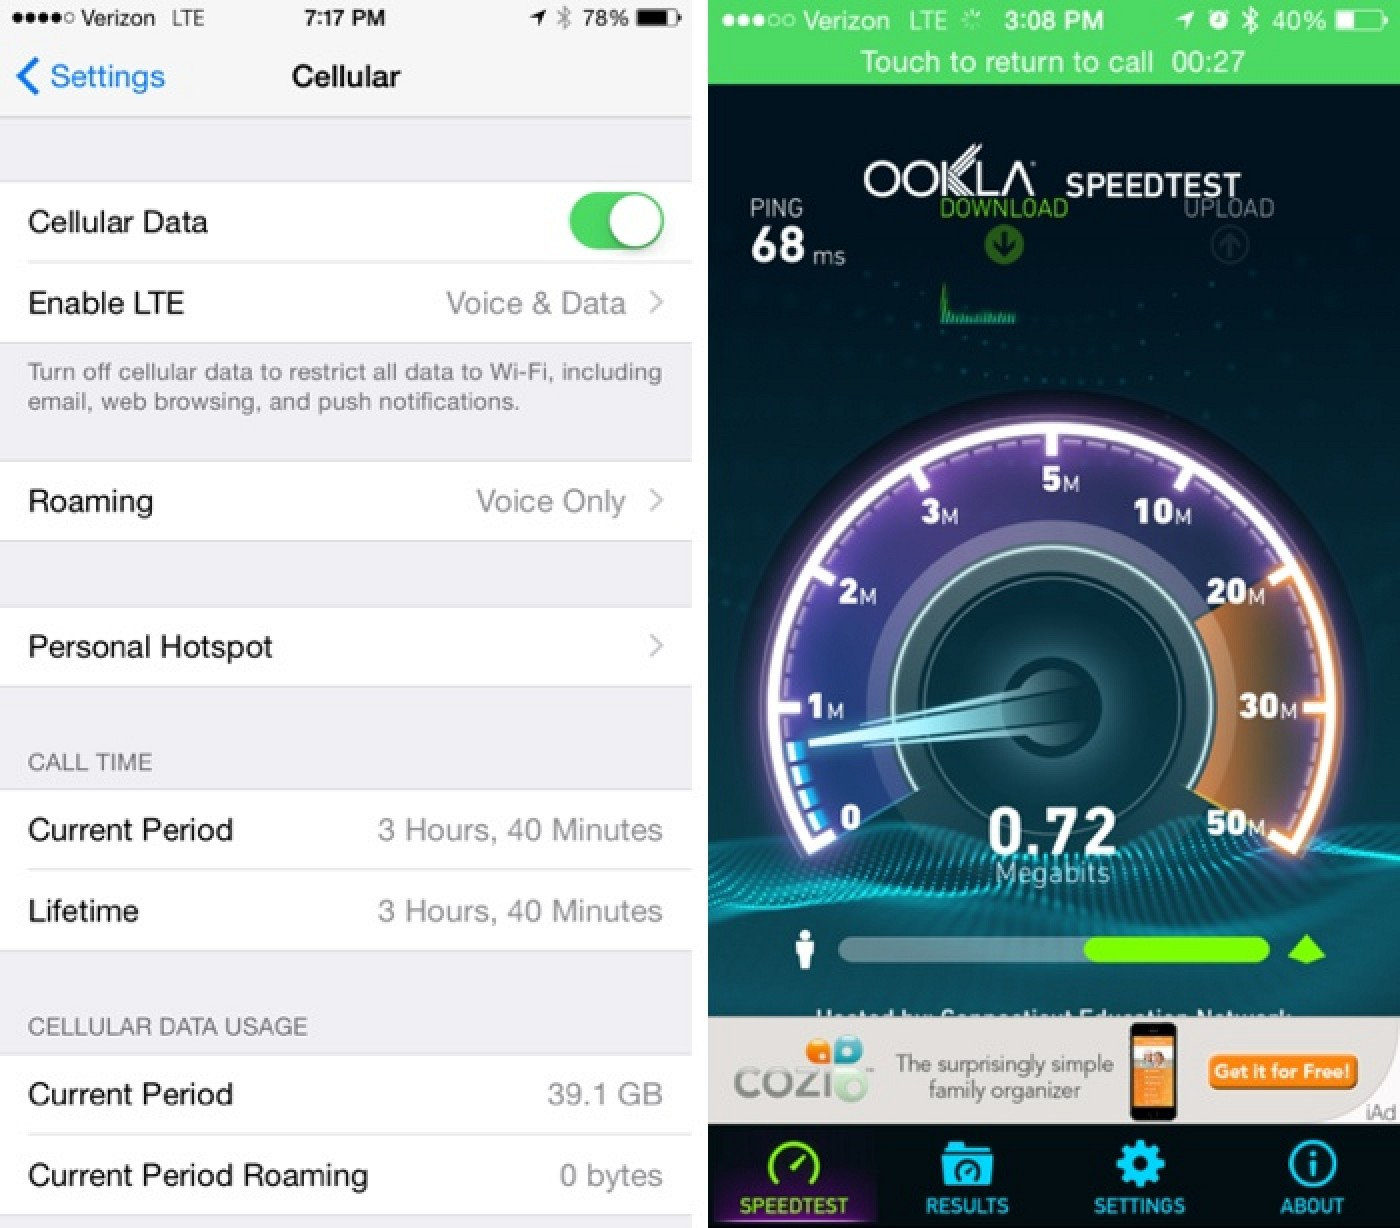 Simultaneous Voice/Data, HD Voice Now Available to Verizon iPhone 6 and 6 Plus Users